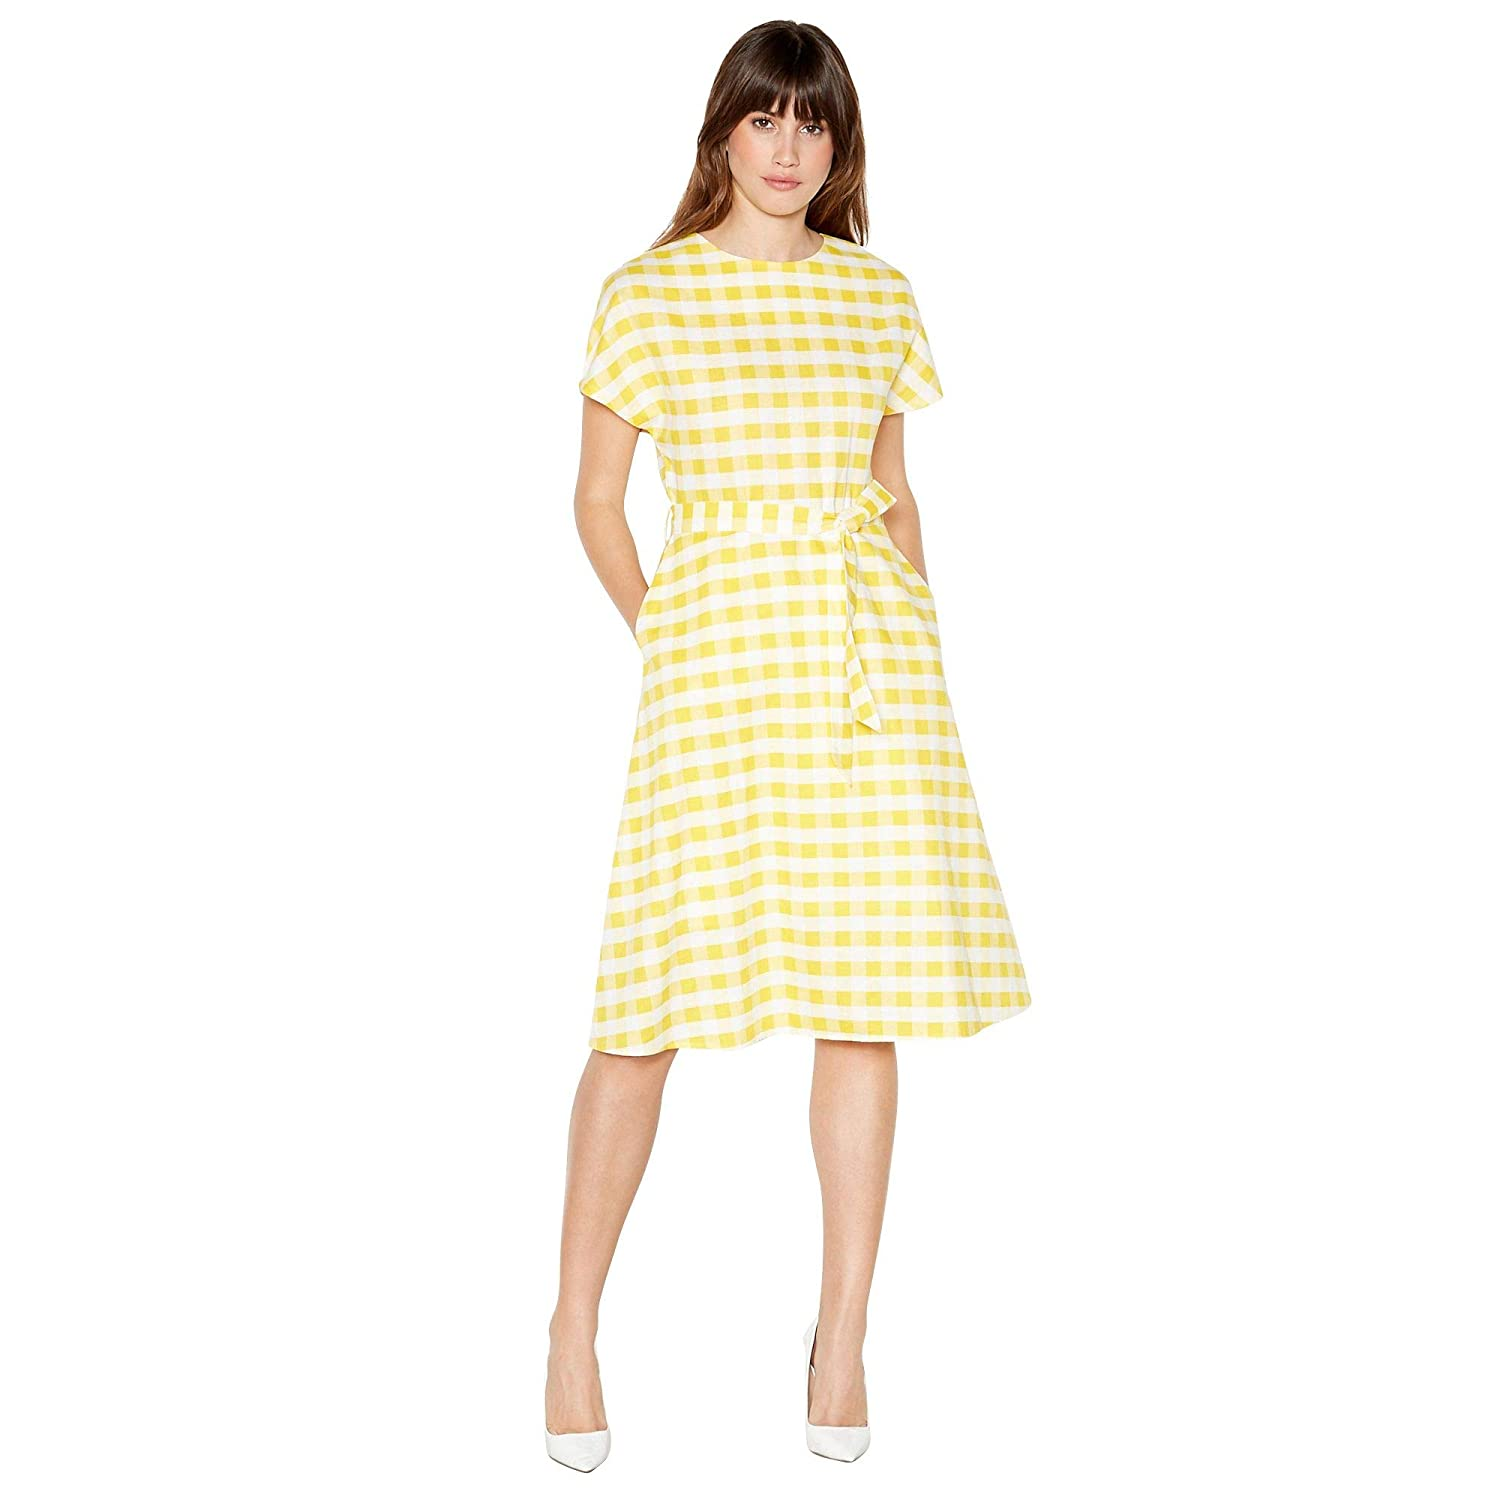 2bb033d596a Principles Womens Yellow Gingham Print Knee Length Dress  Principles   Amazon.co.uk  Clothing